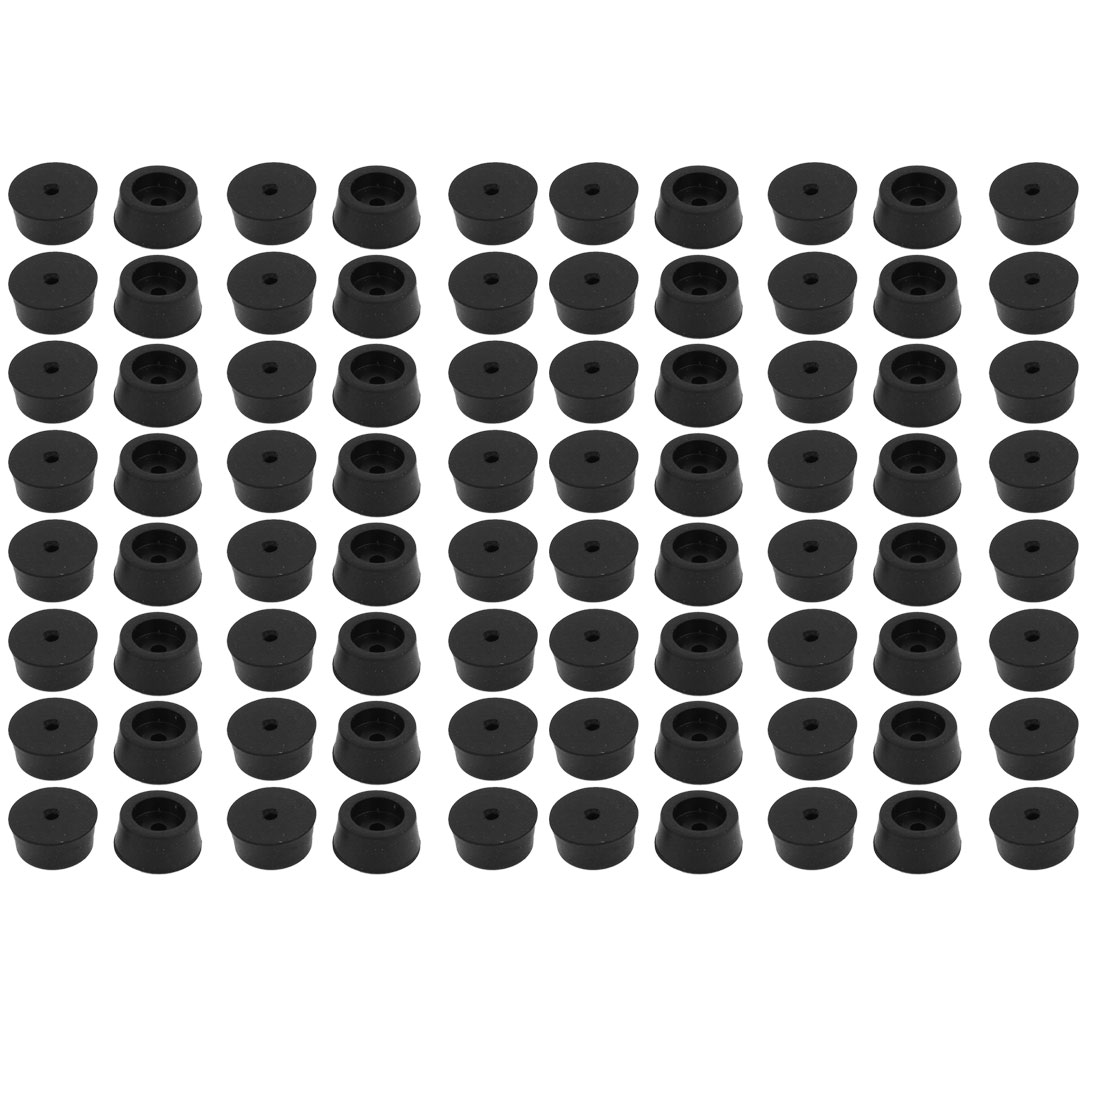 100 Pcs Black Rubber Furniture Desk Foot Pads 18x8mm